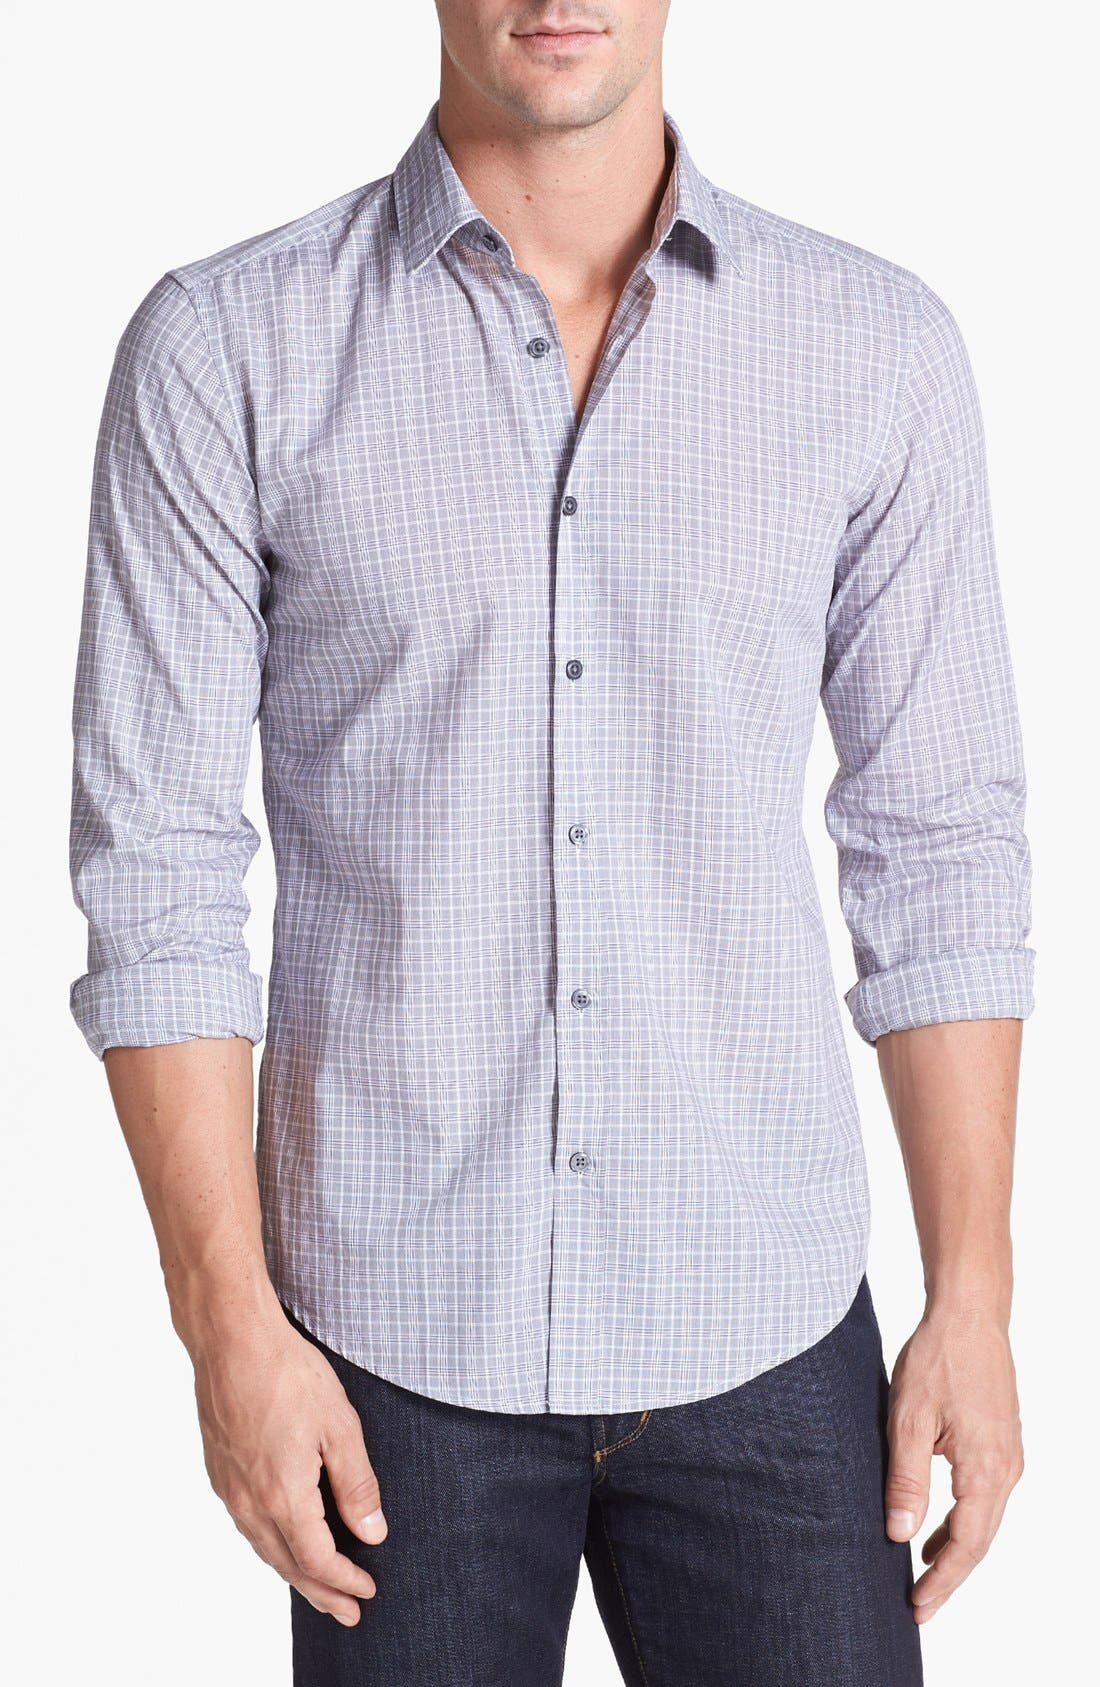 Alternate Image 1 Selected - BOSS HUGO BOSS 'Ronny' Slim Fit Sport Shirt